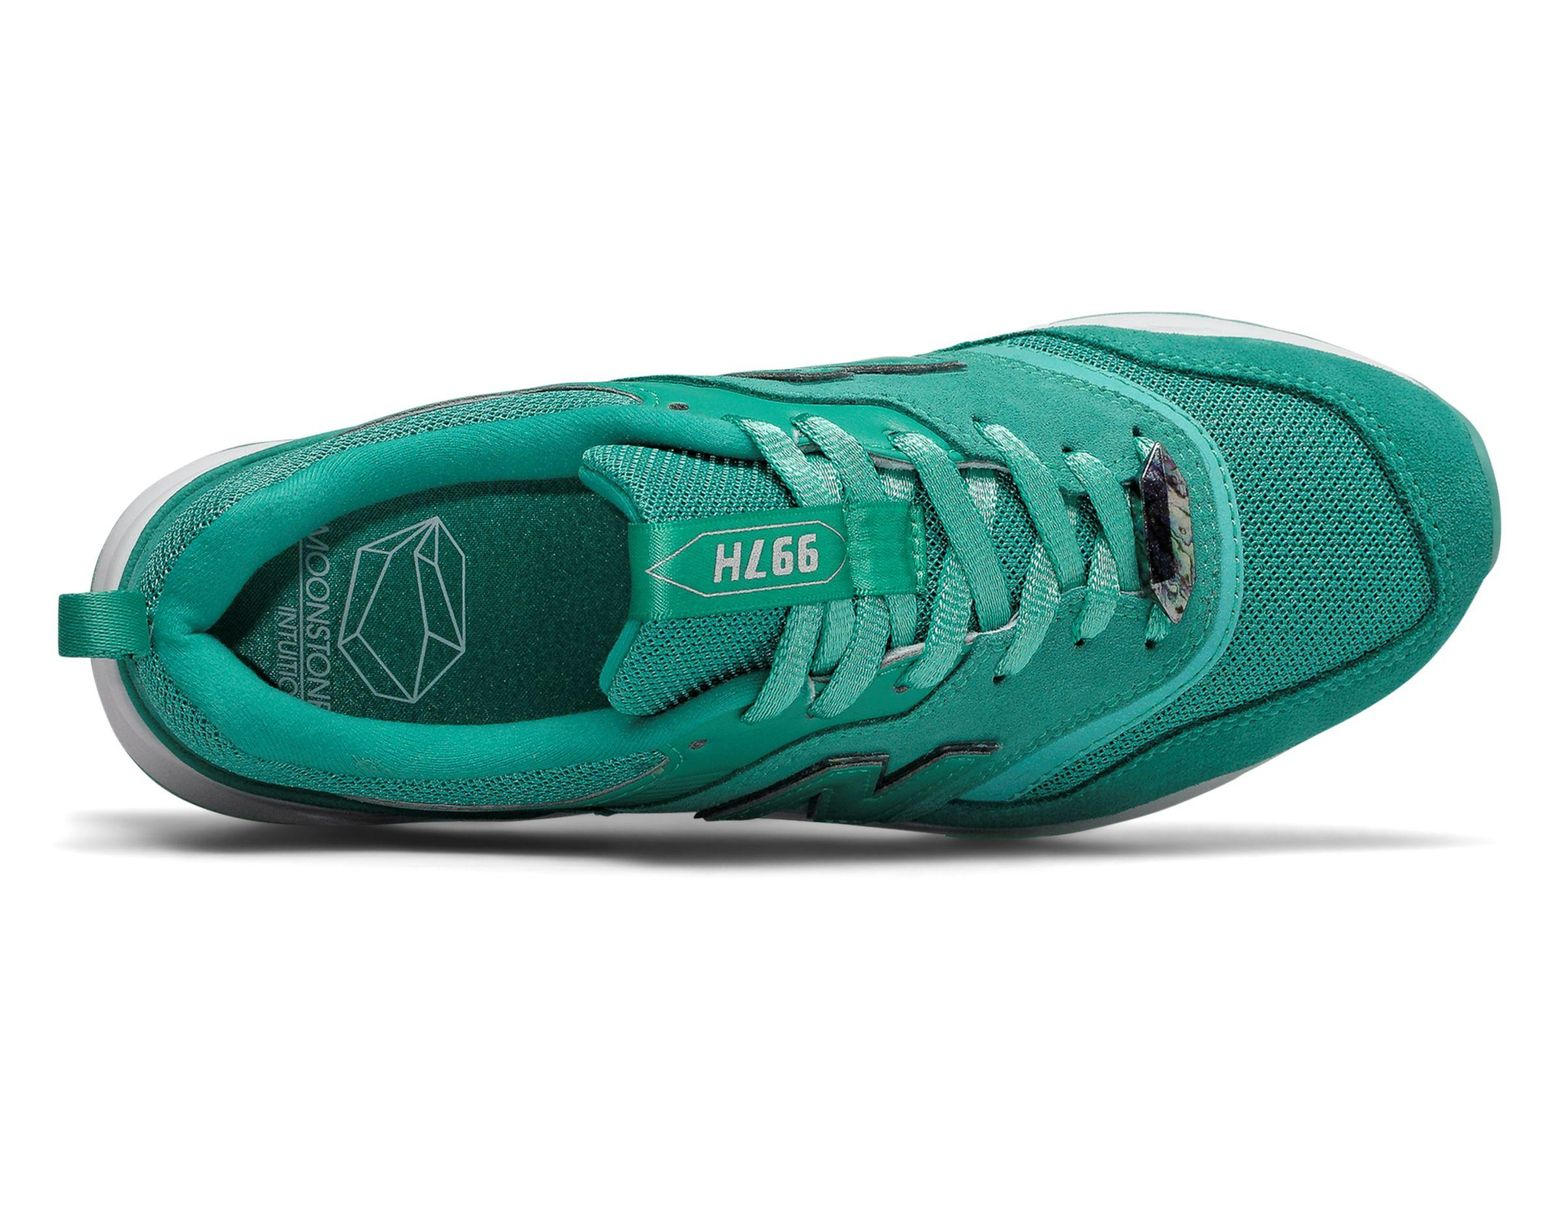 dc9a5b4bc70d3 New Balance 997h Mystic Crystal in Green - Lyst